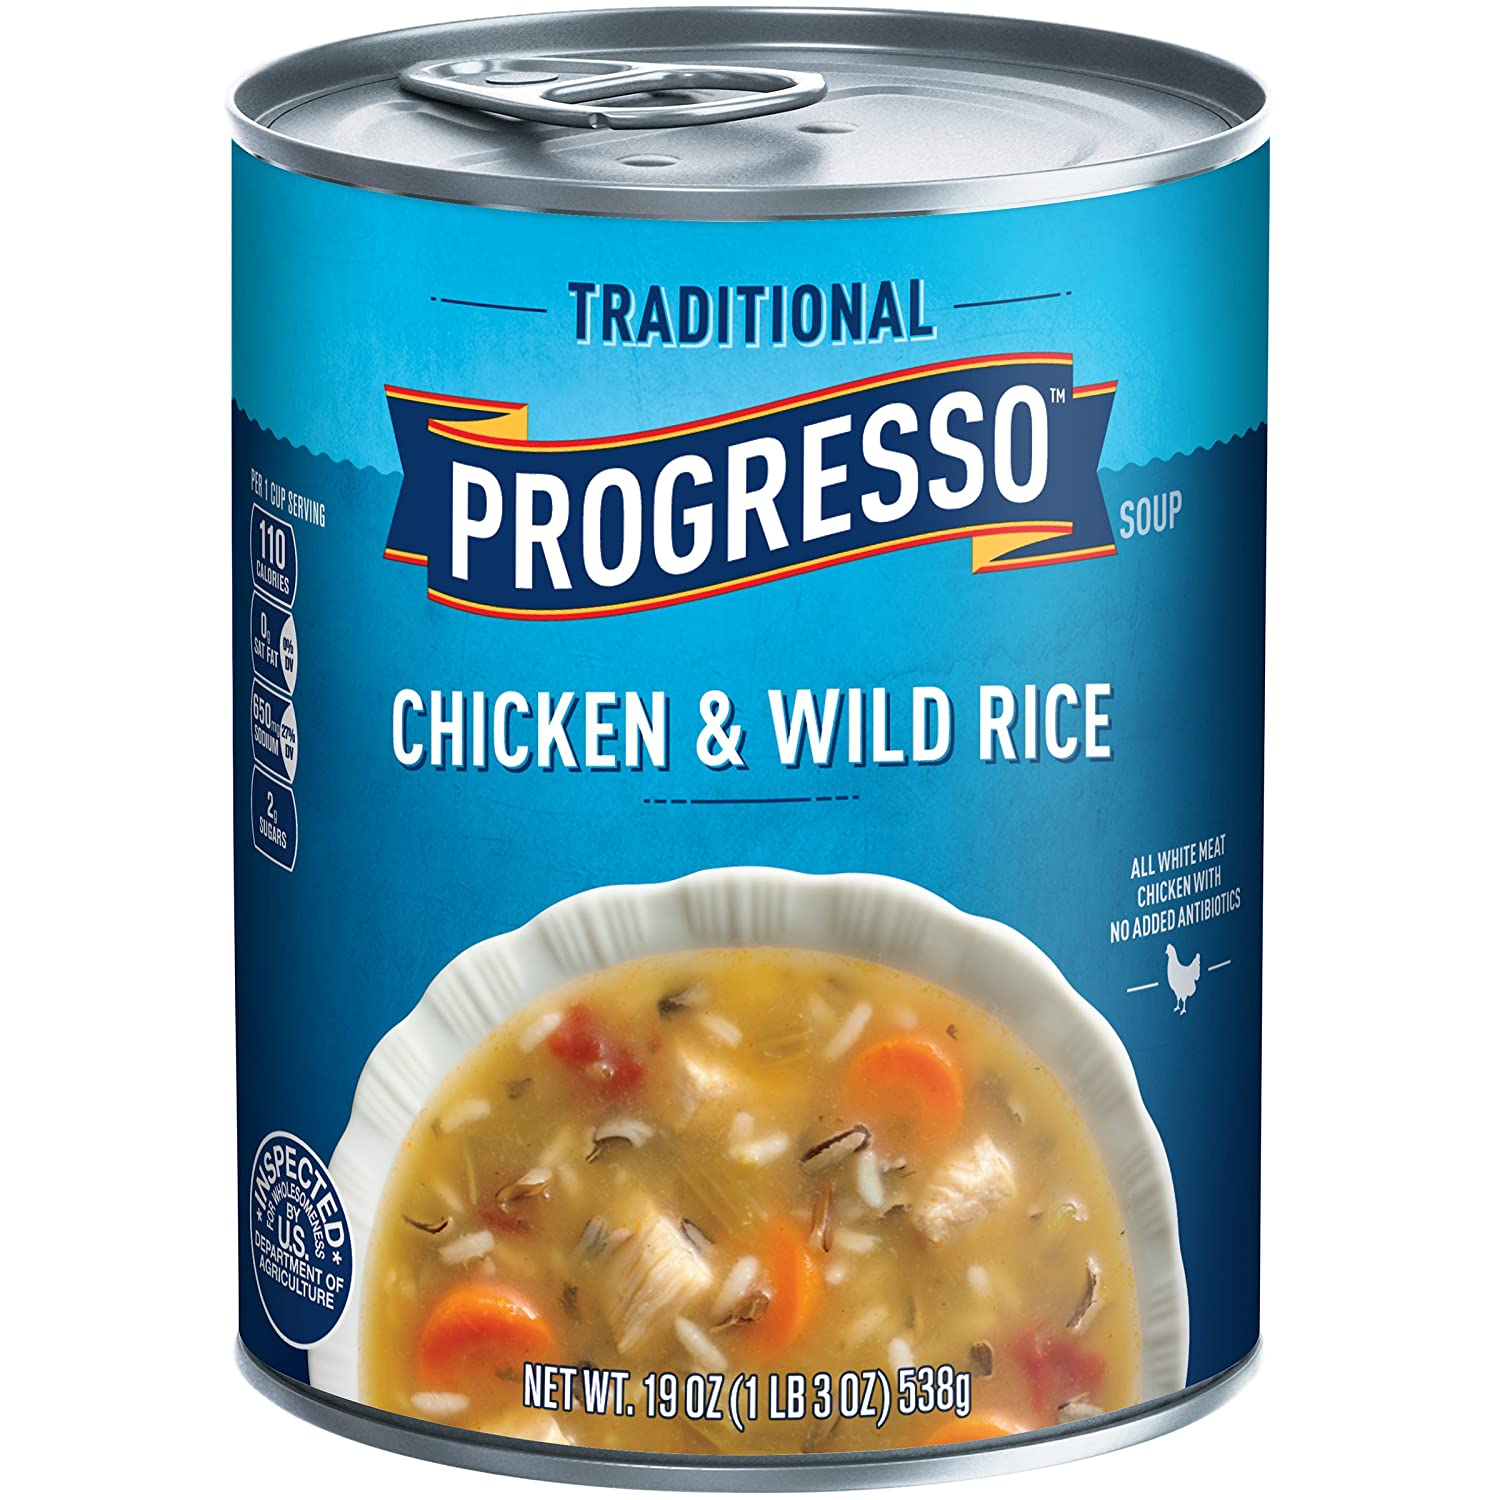 Amazon.com: Progresso Soup, Traditional, Chicken and Wild Rice Soup ...